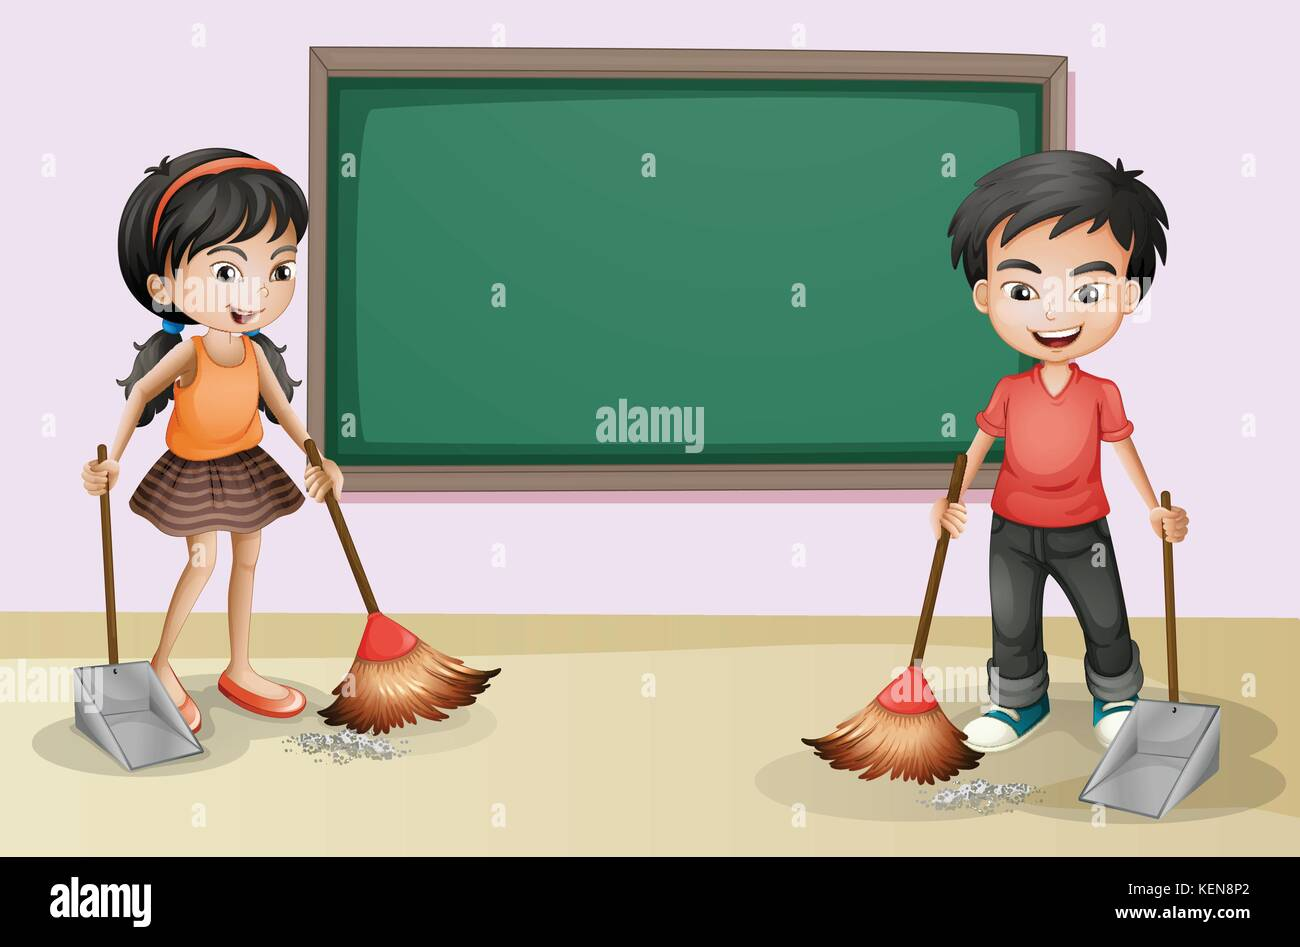 Children cleaning environment clipart